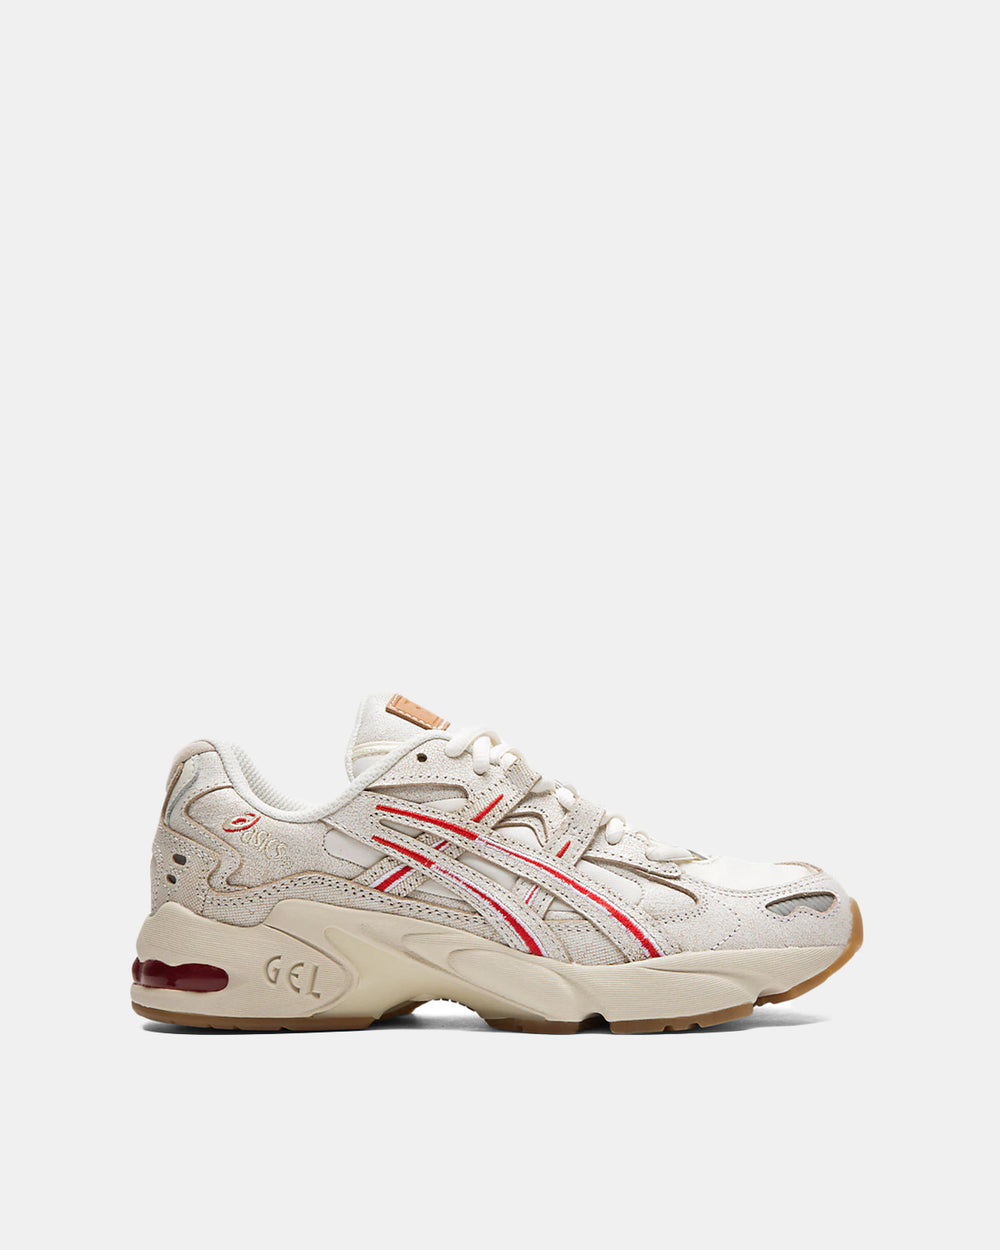 W Gel-Kayano 5 OG Cream/White